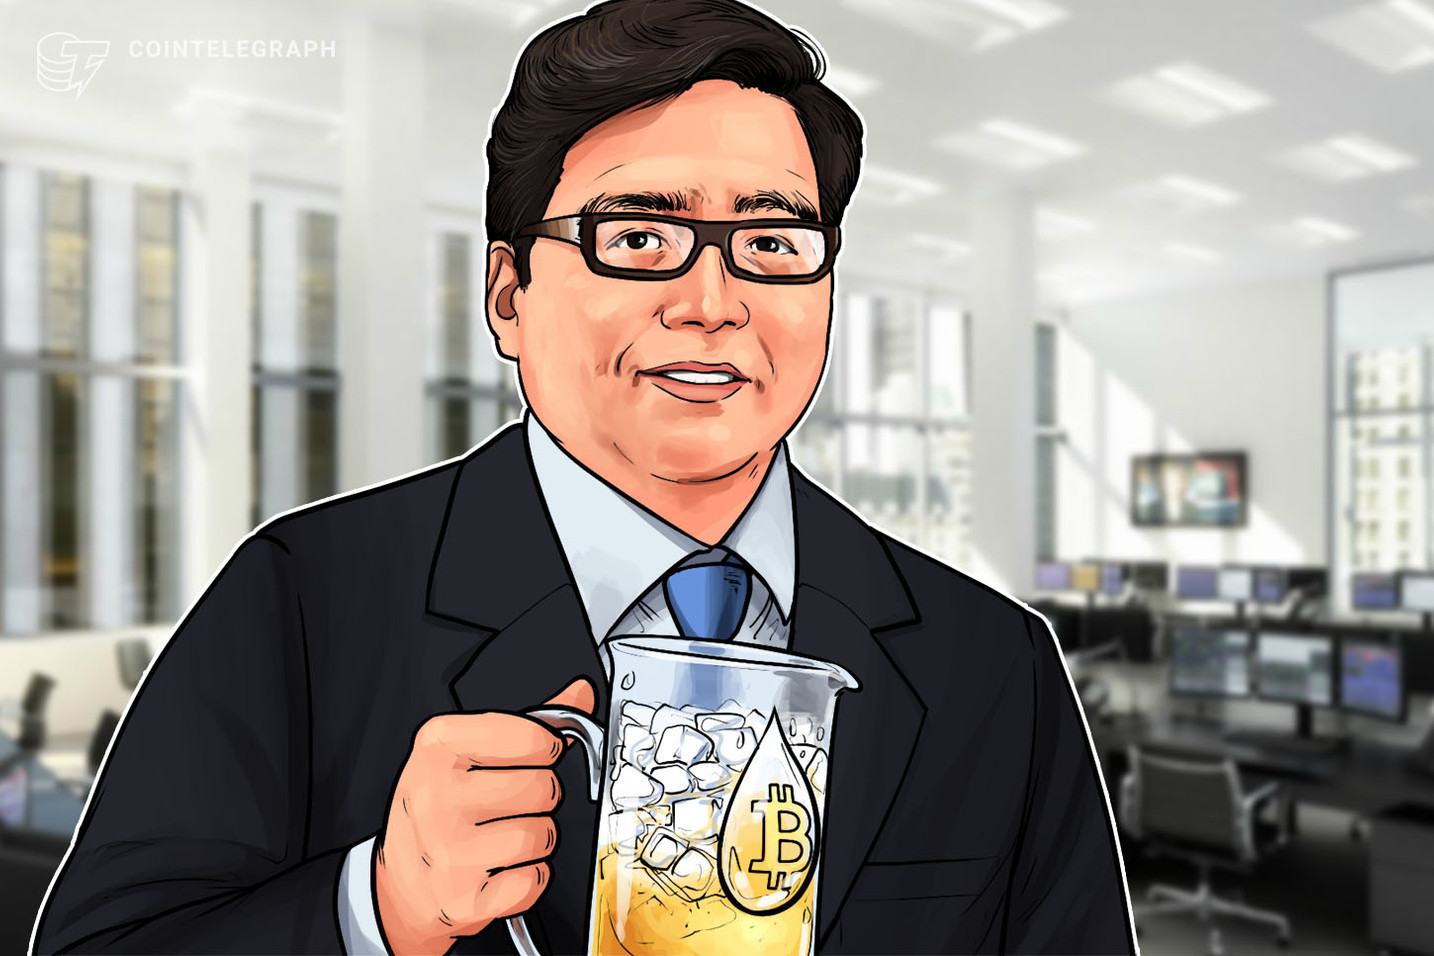 Fundstrat Co-Founder Thomas Lee Says Bitcoin's Volatility Favors a Long-Term Approach